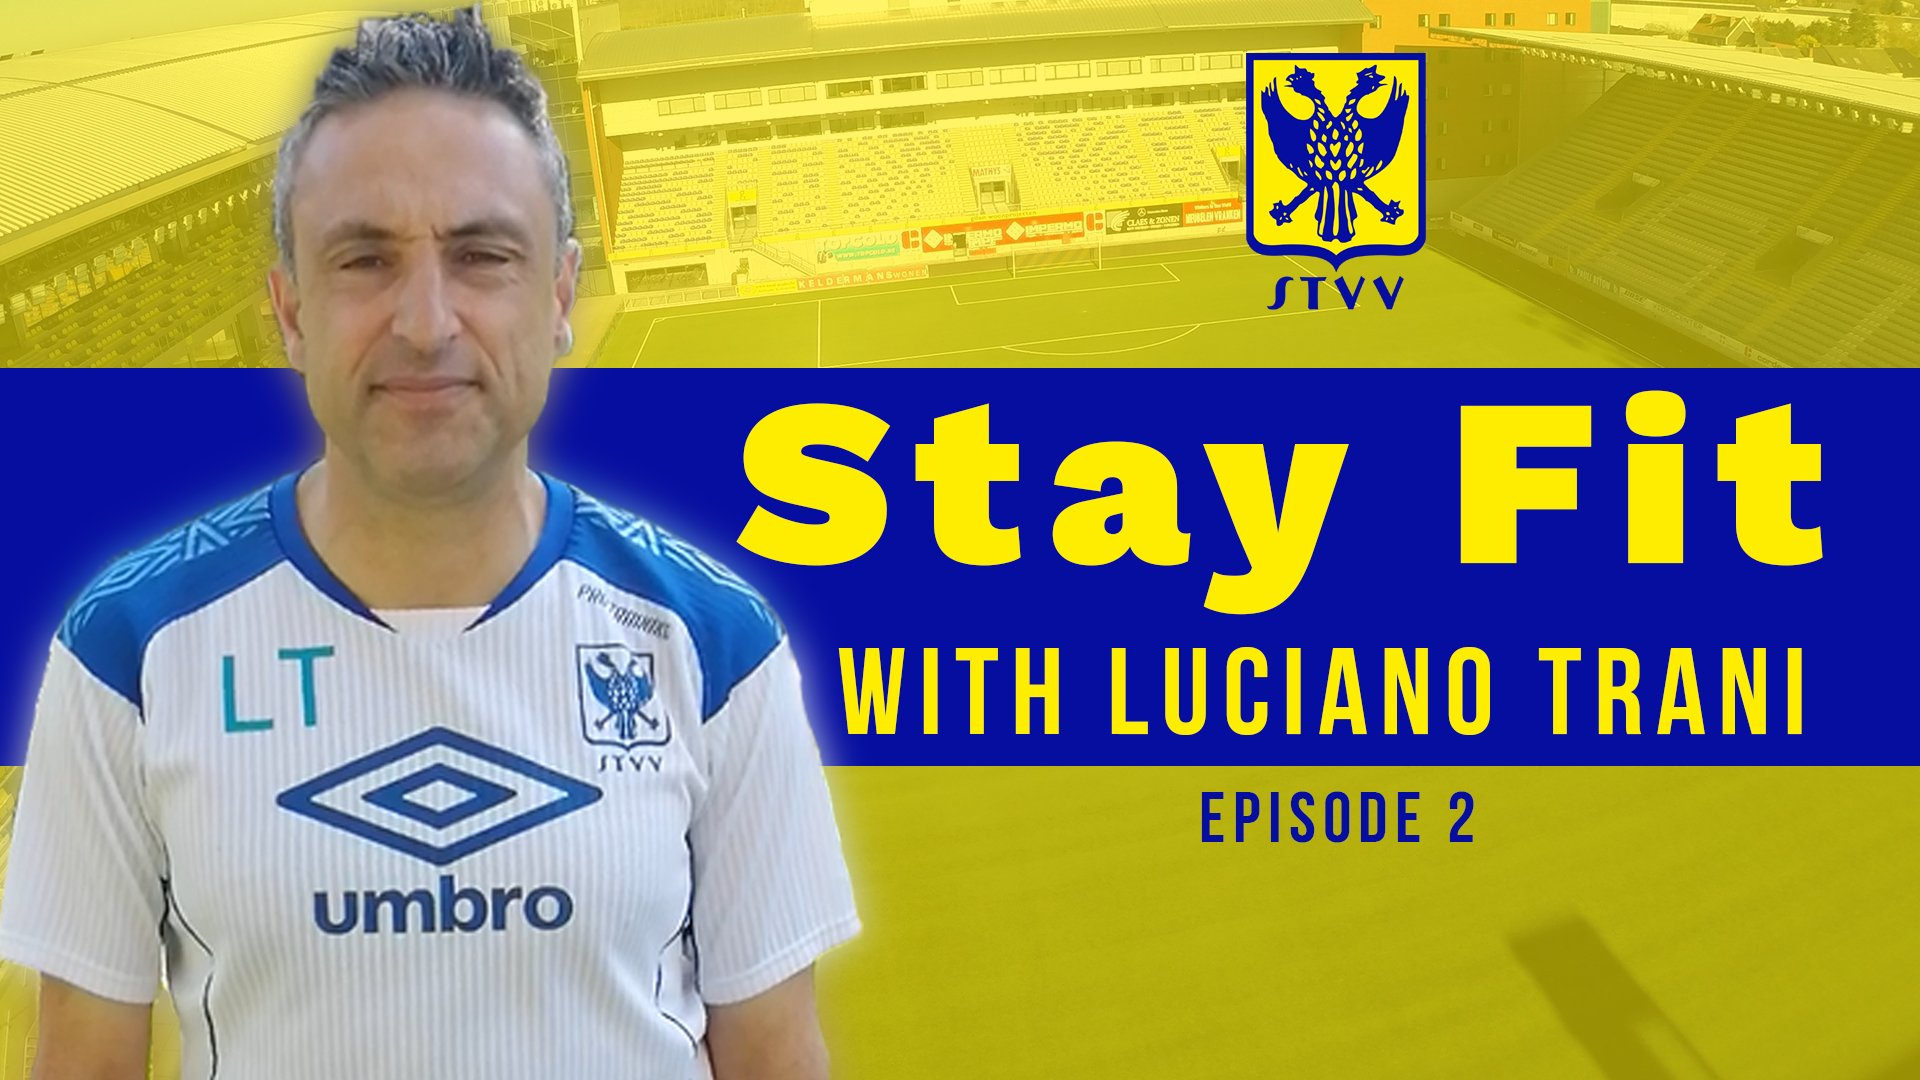 #StayFitWithLuc: Episode 2